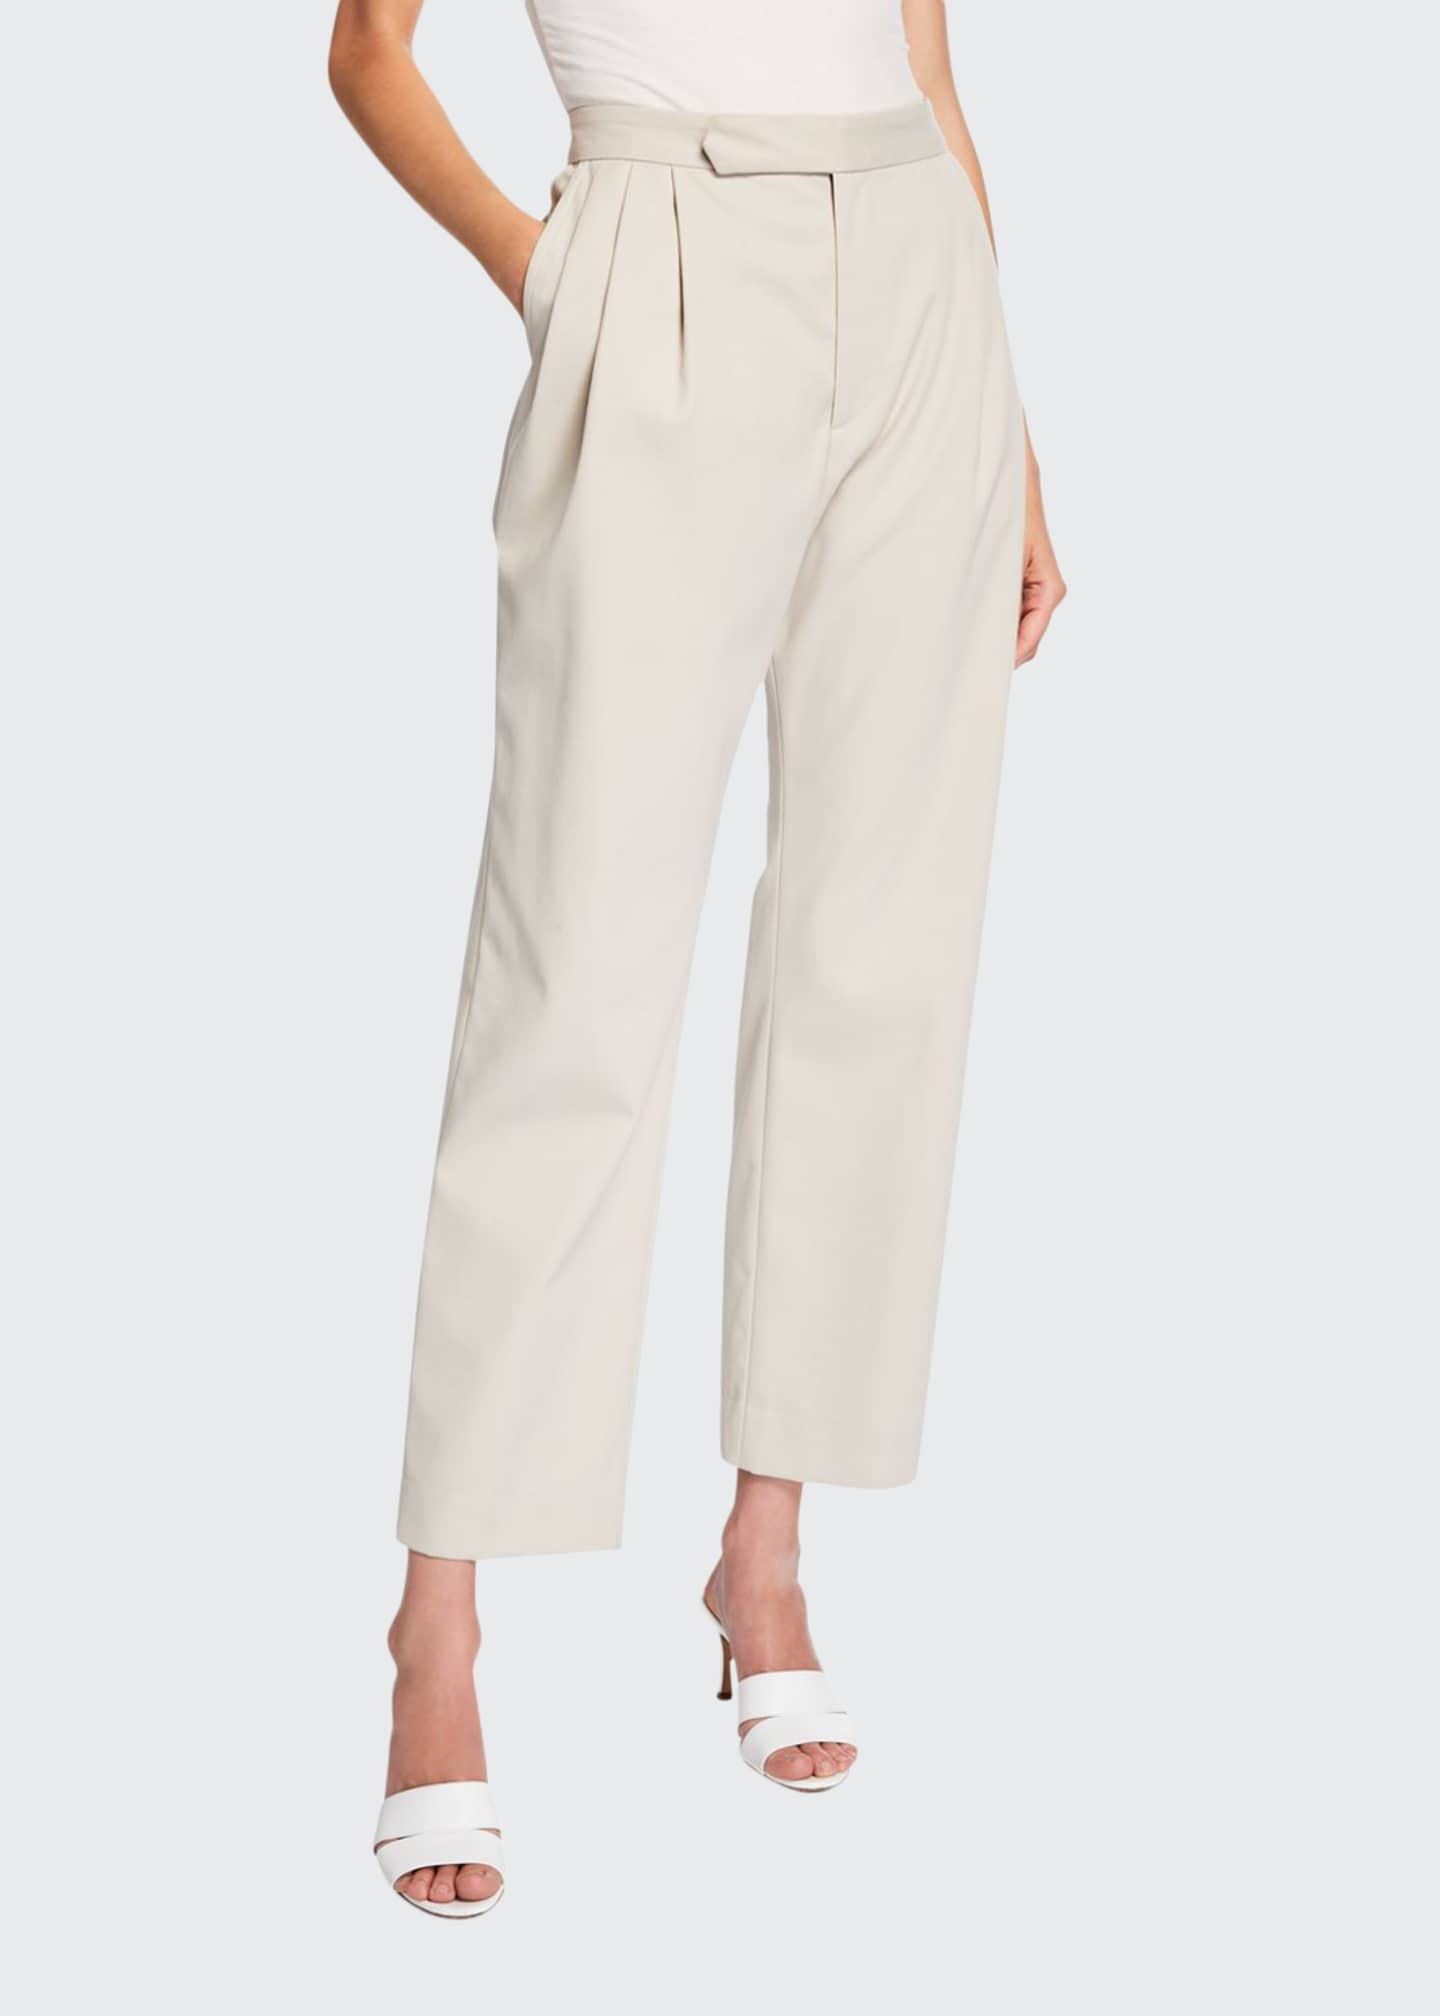 Deveaux New York Isabella Pleated Repellant Twill Pants